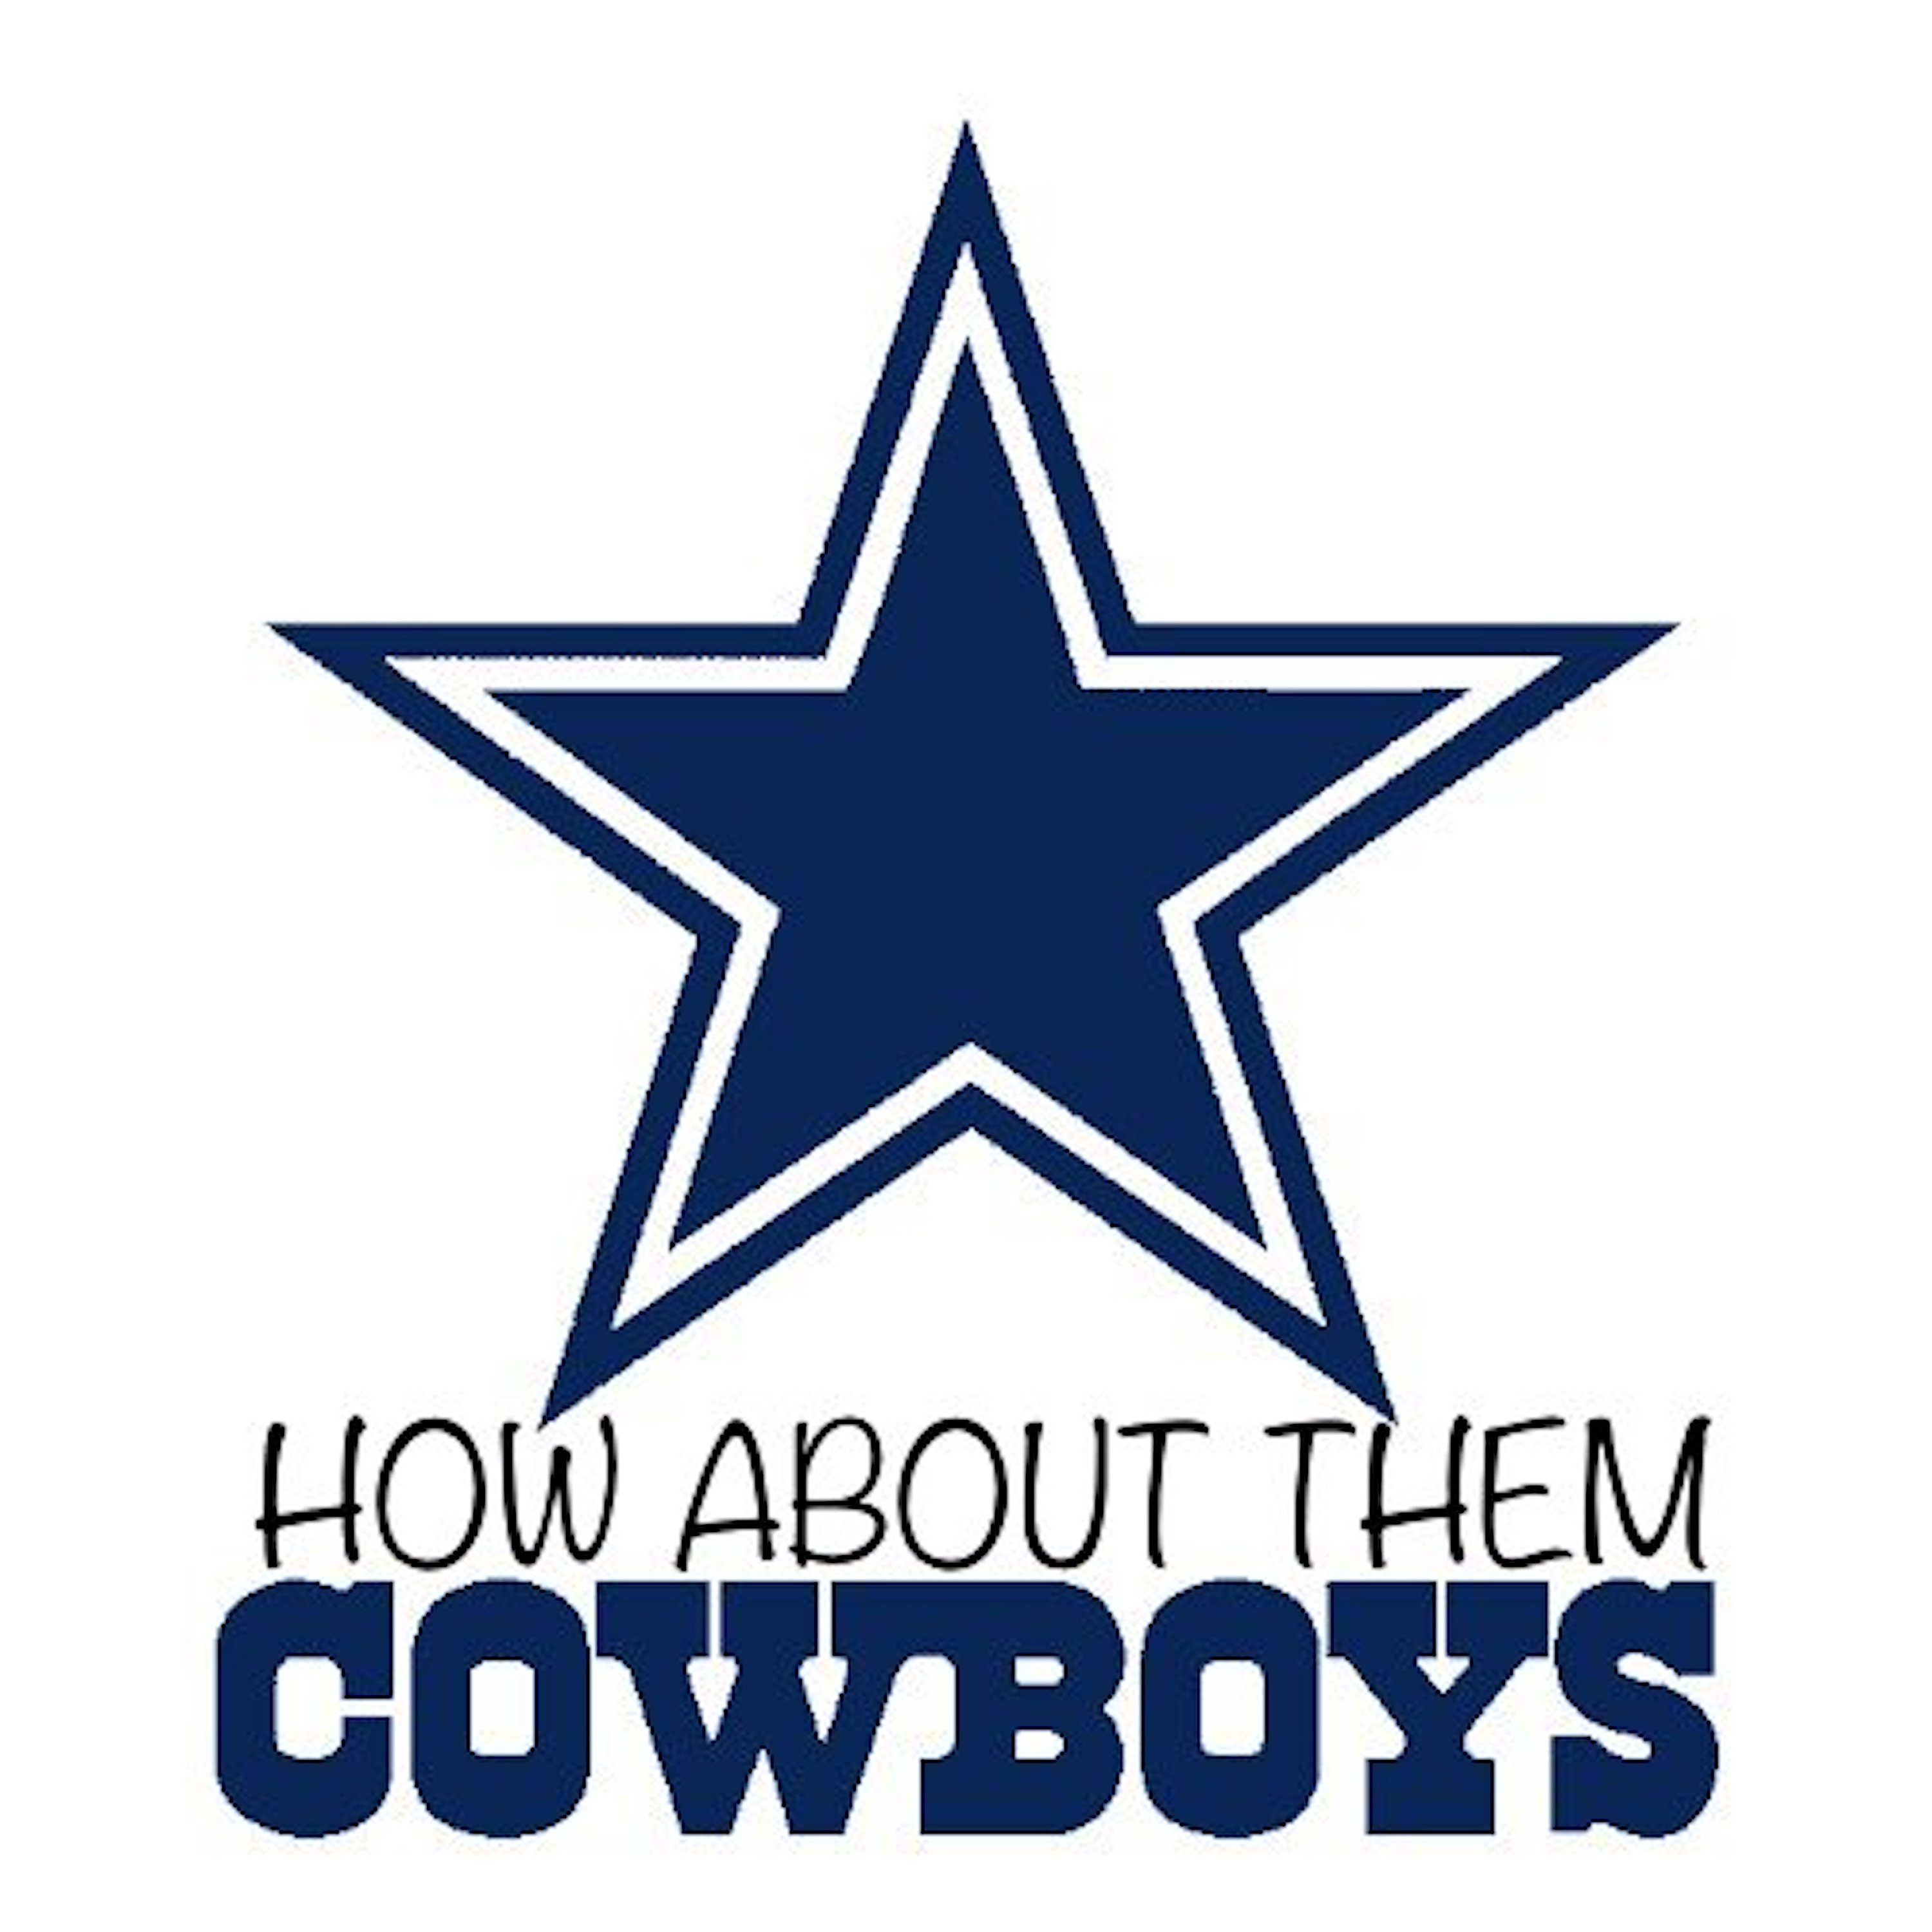 Cowboys CRUSH the Niners – How About Them Cowboys